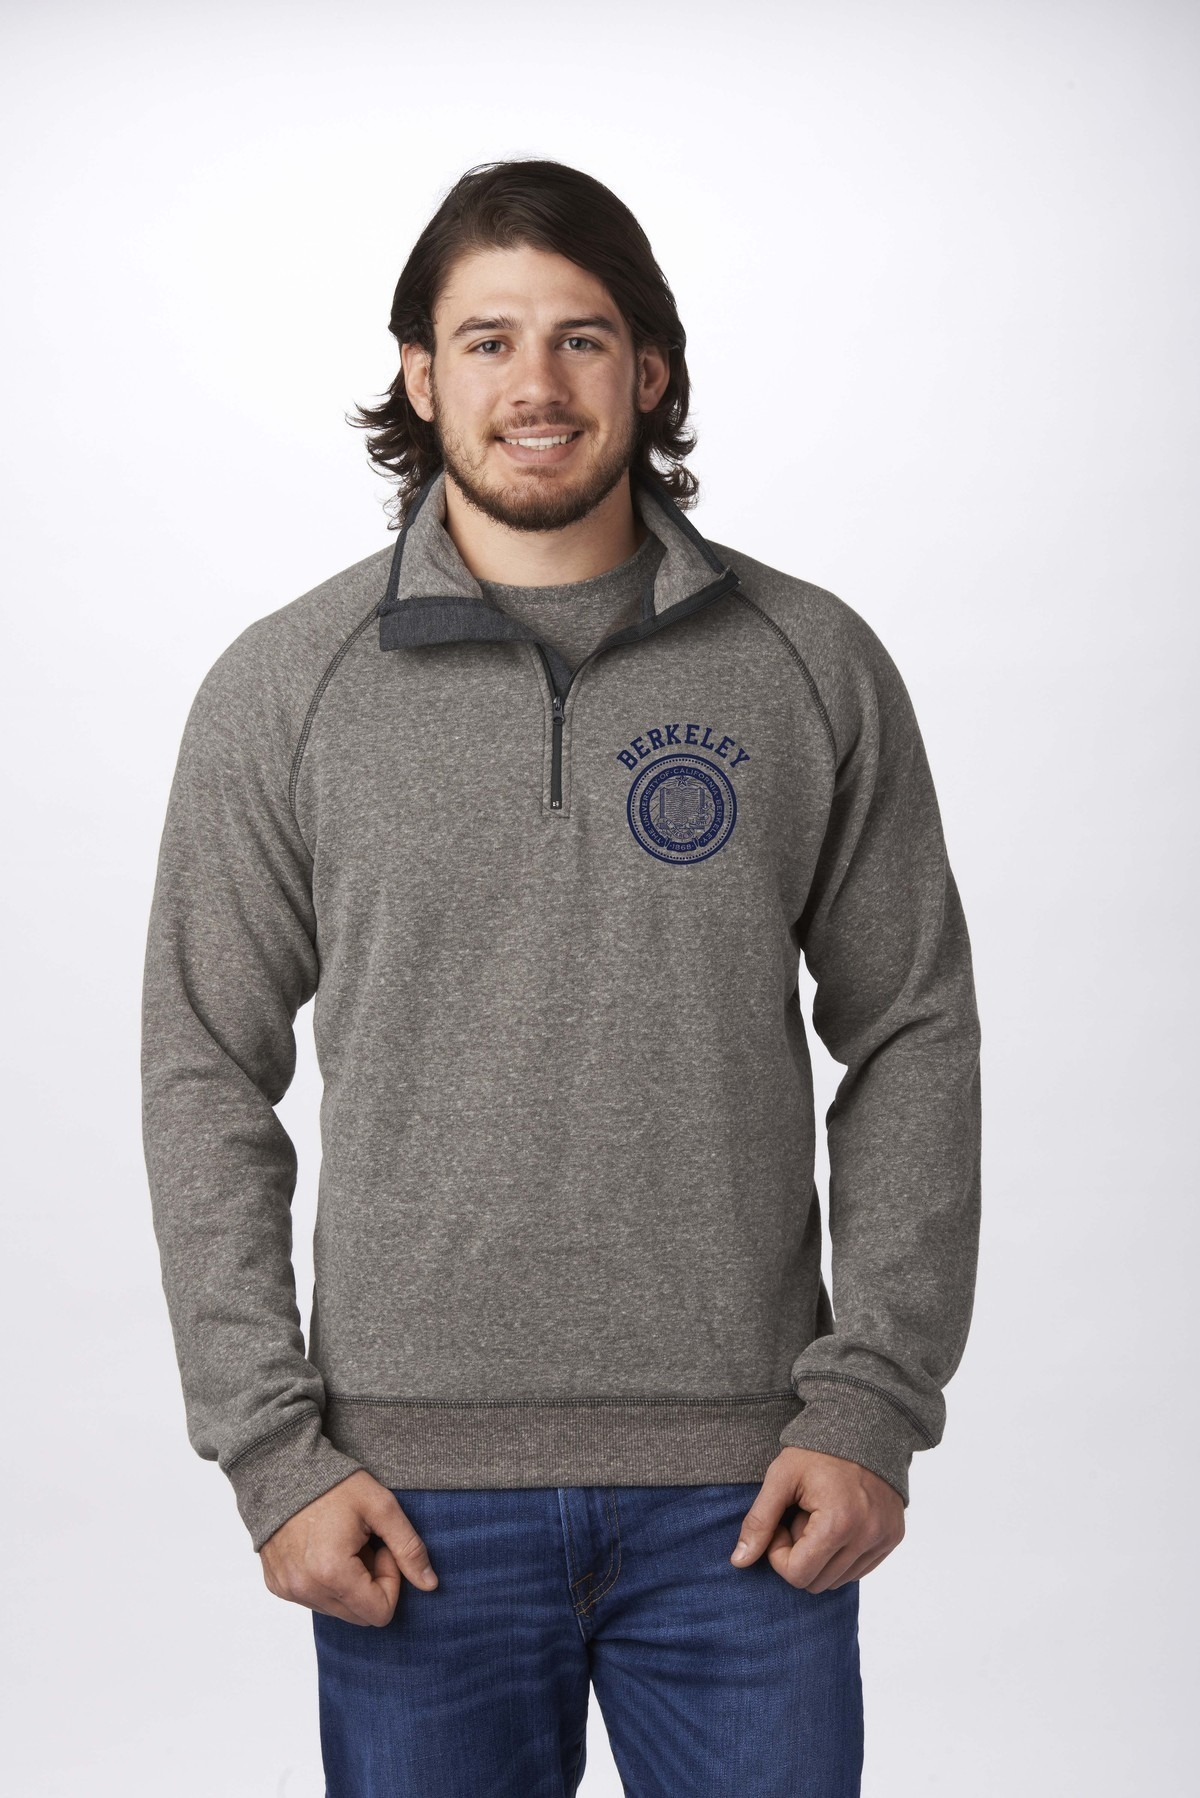 MD25-M 1/4 Zip Mock by Campus Crew